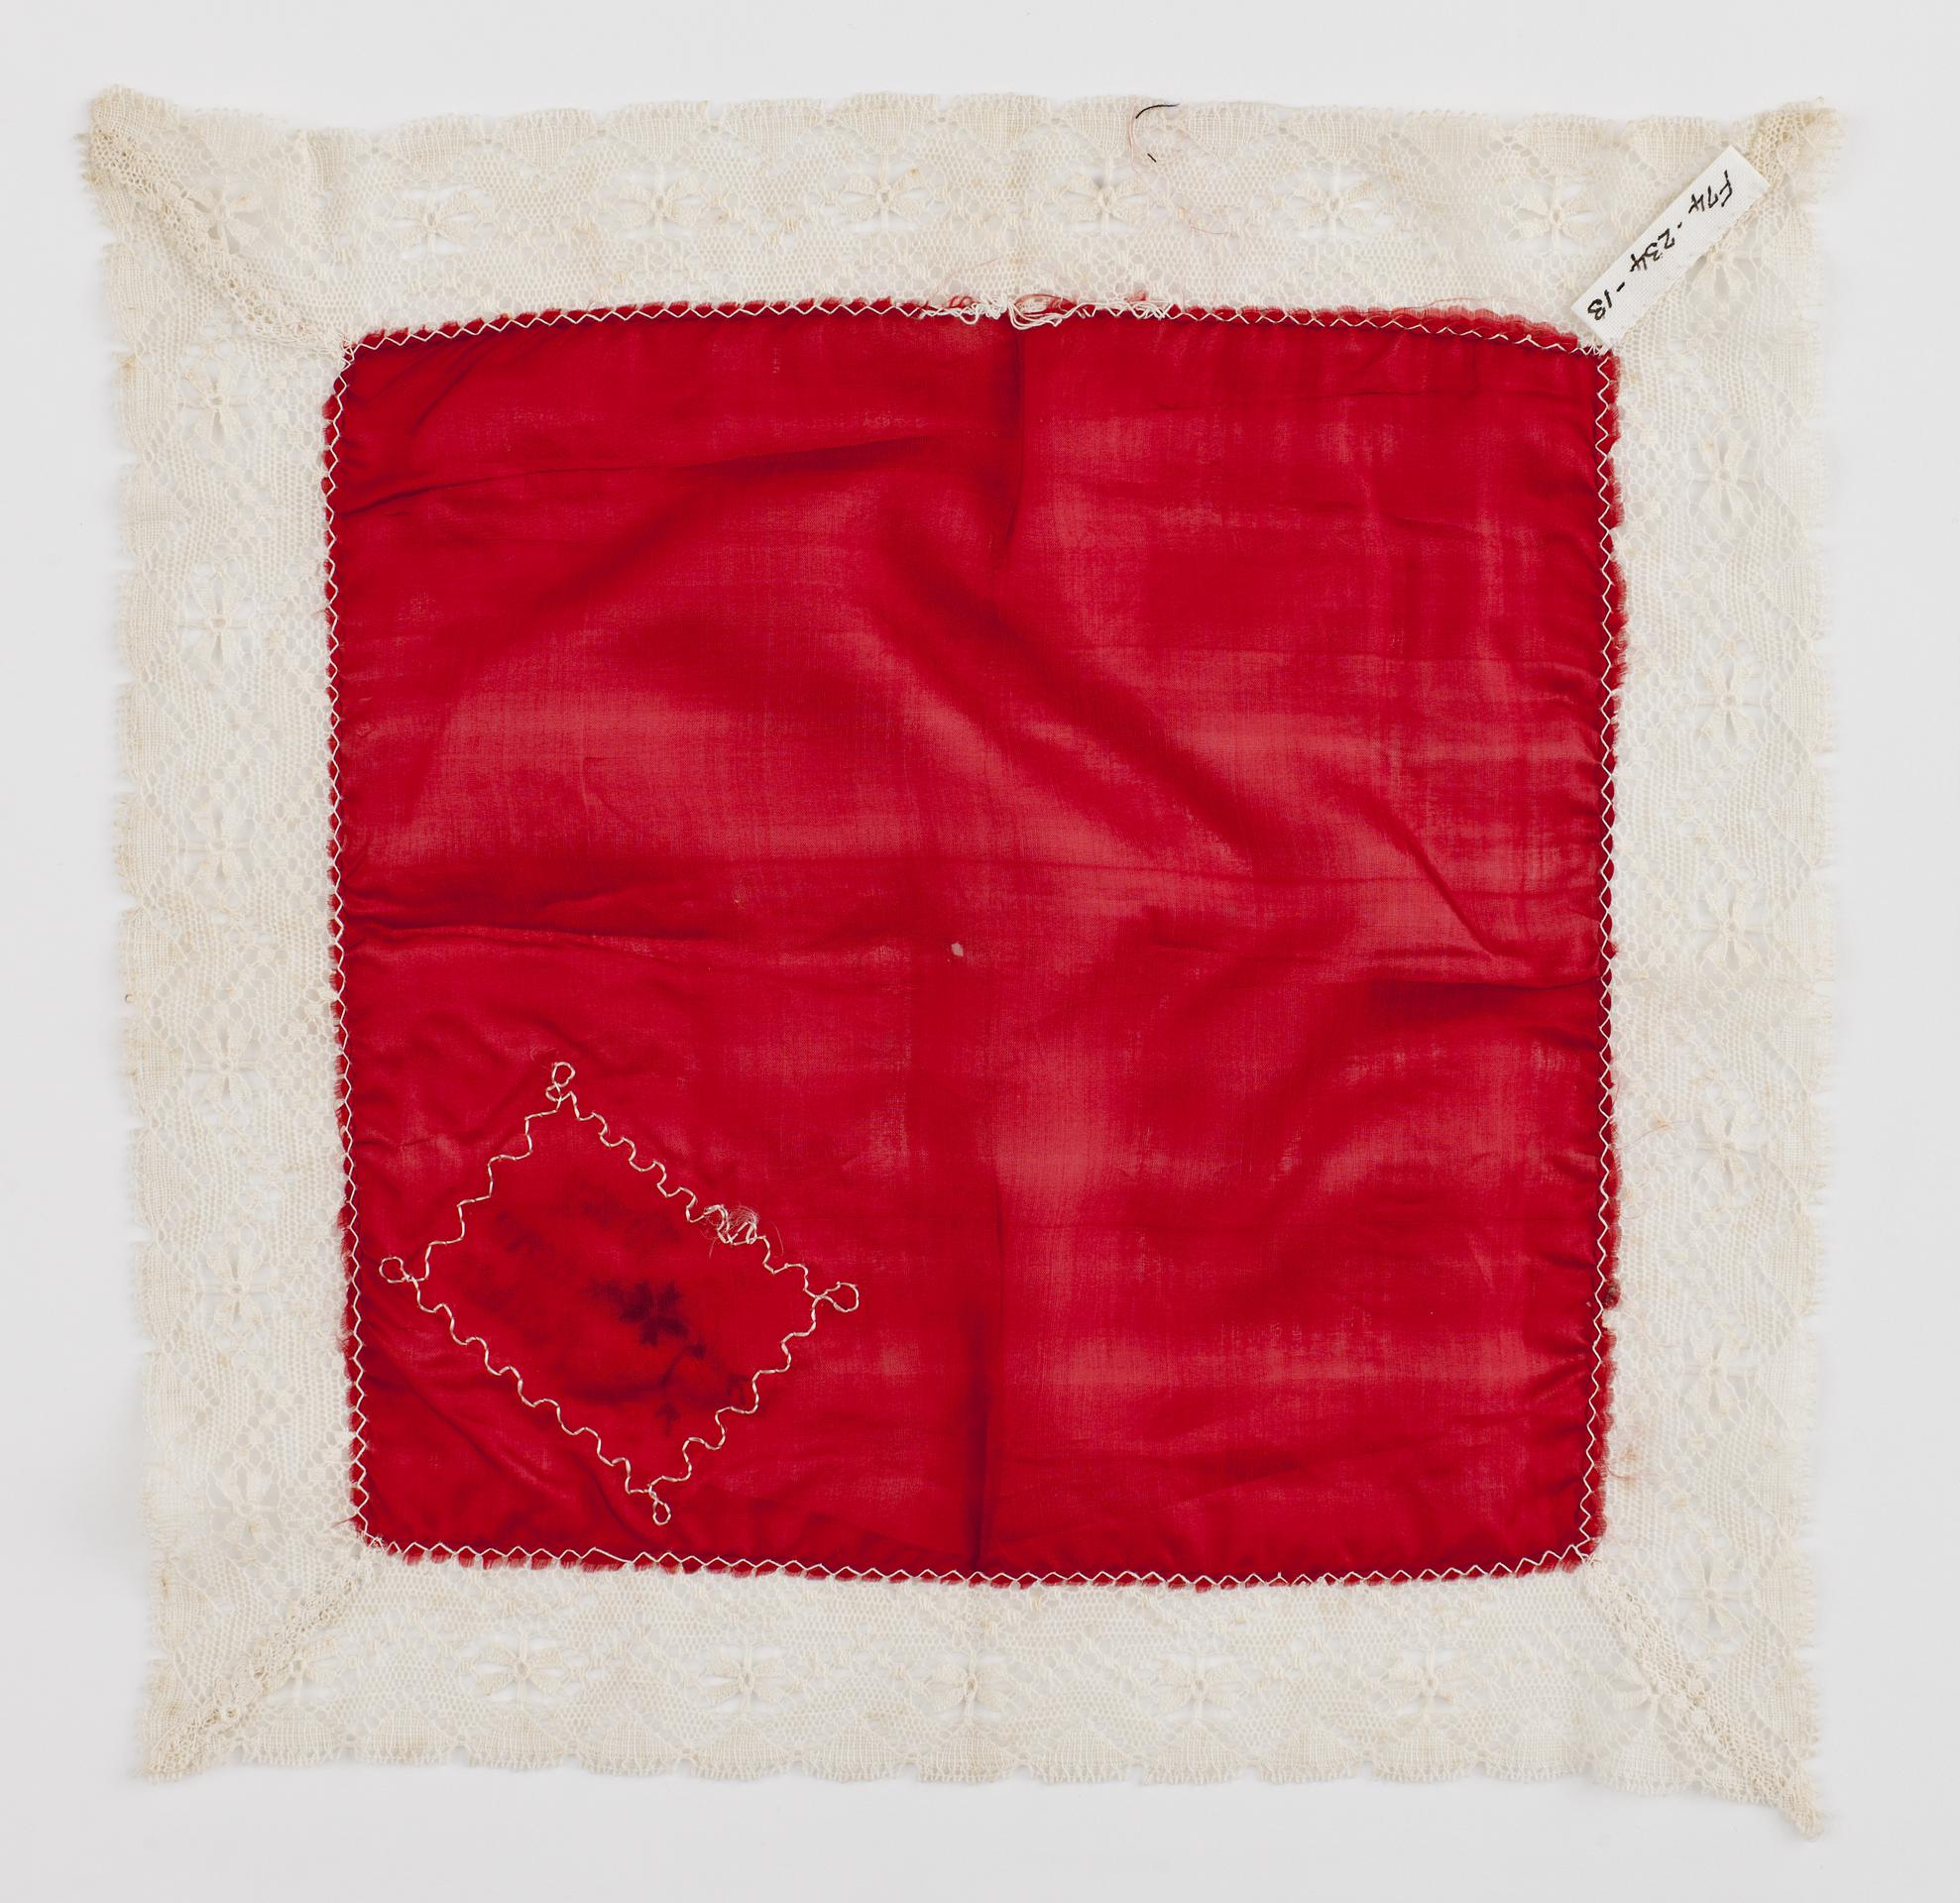 Open the image &lsquoRed silk handkerchief embroidered with the inscription 'To my dear Mother'.'